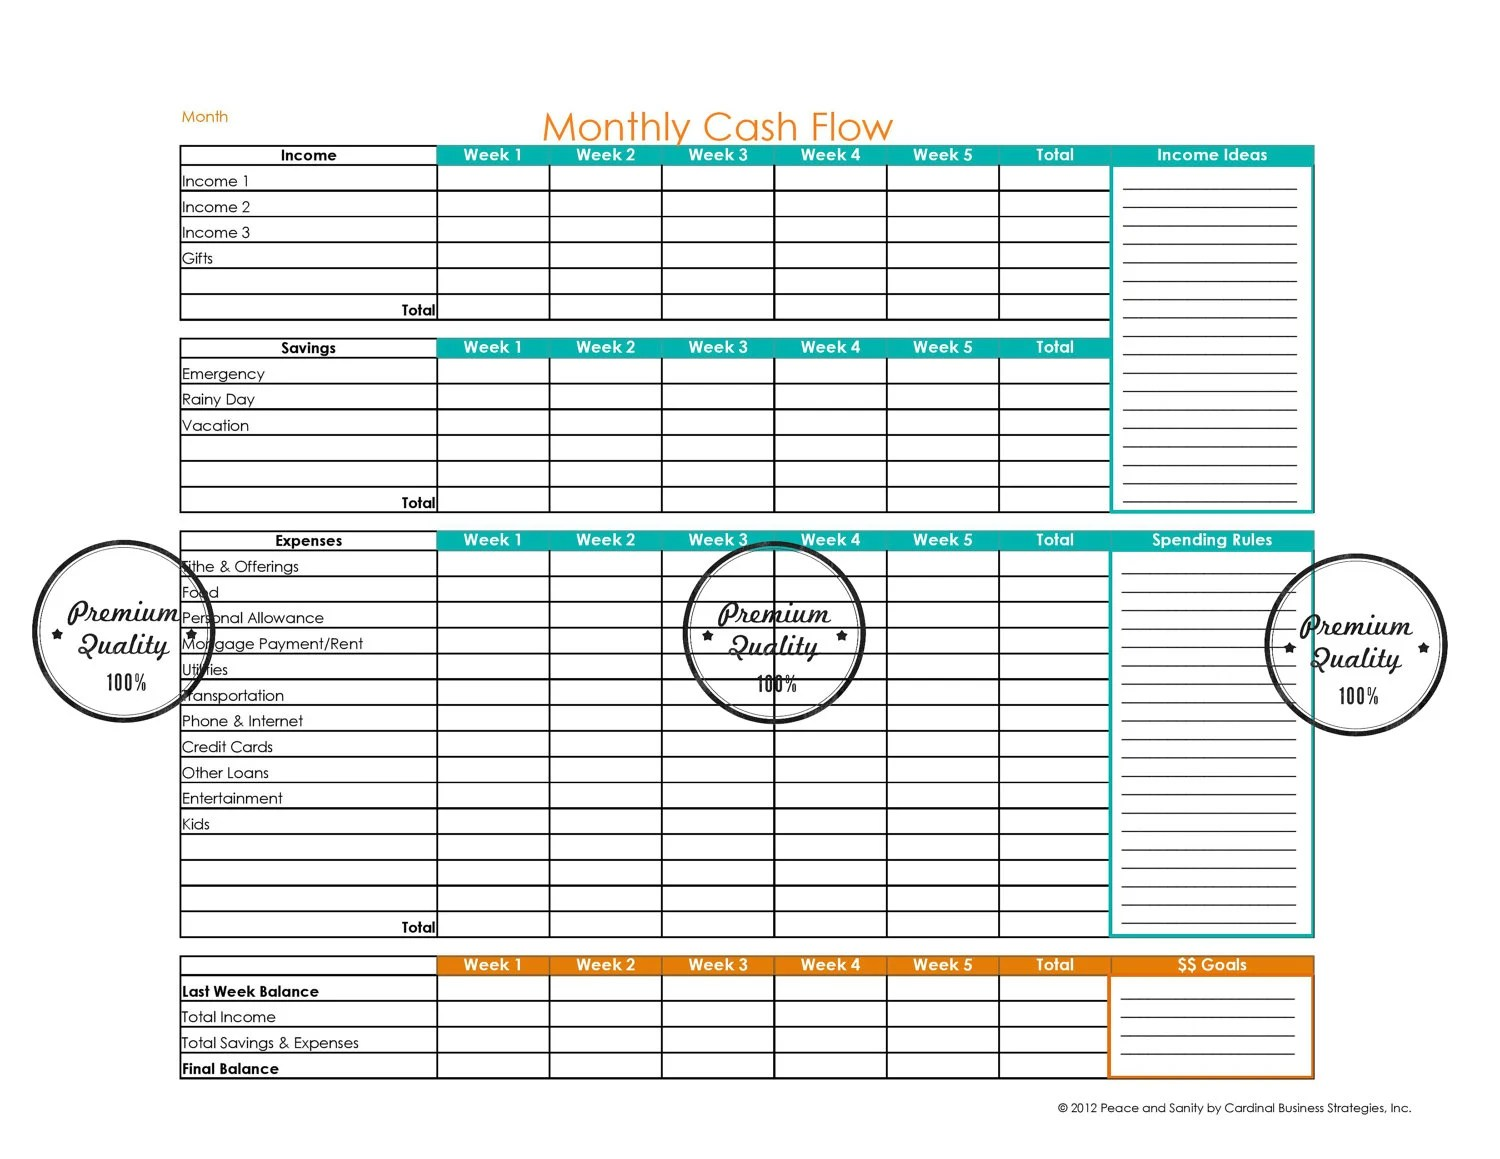 Monthly Budget Planner Cash Flow Printable By Peaceandsanity